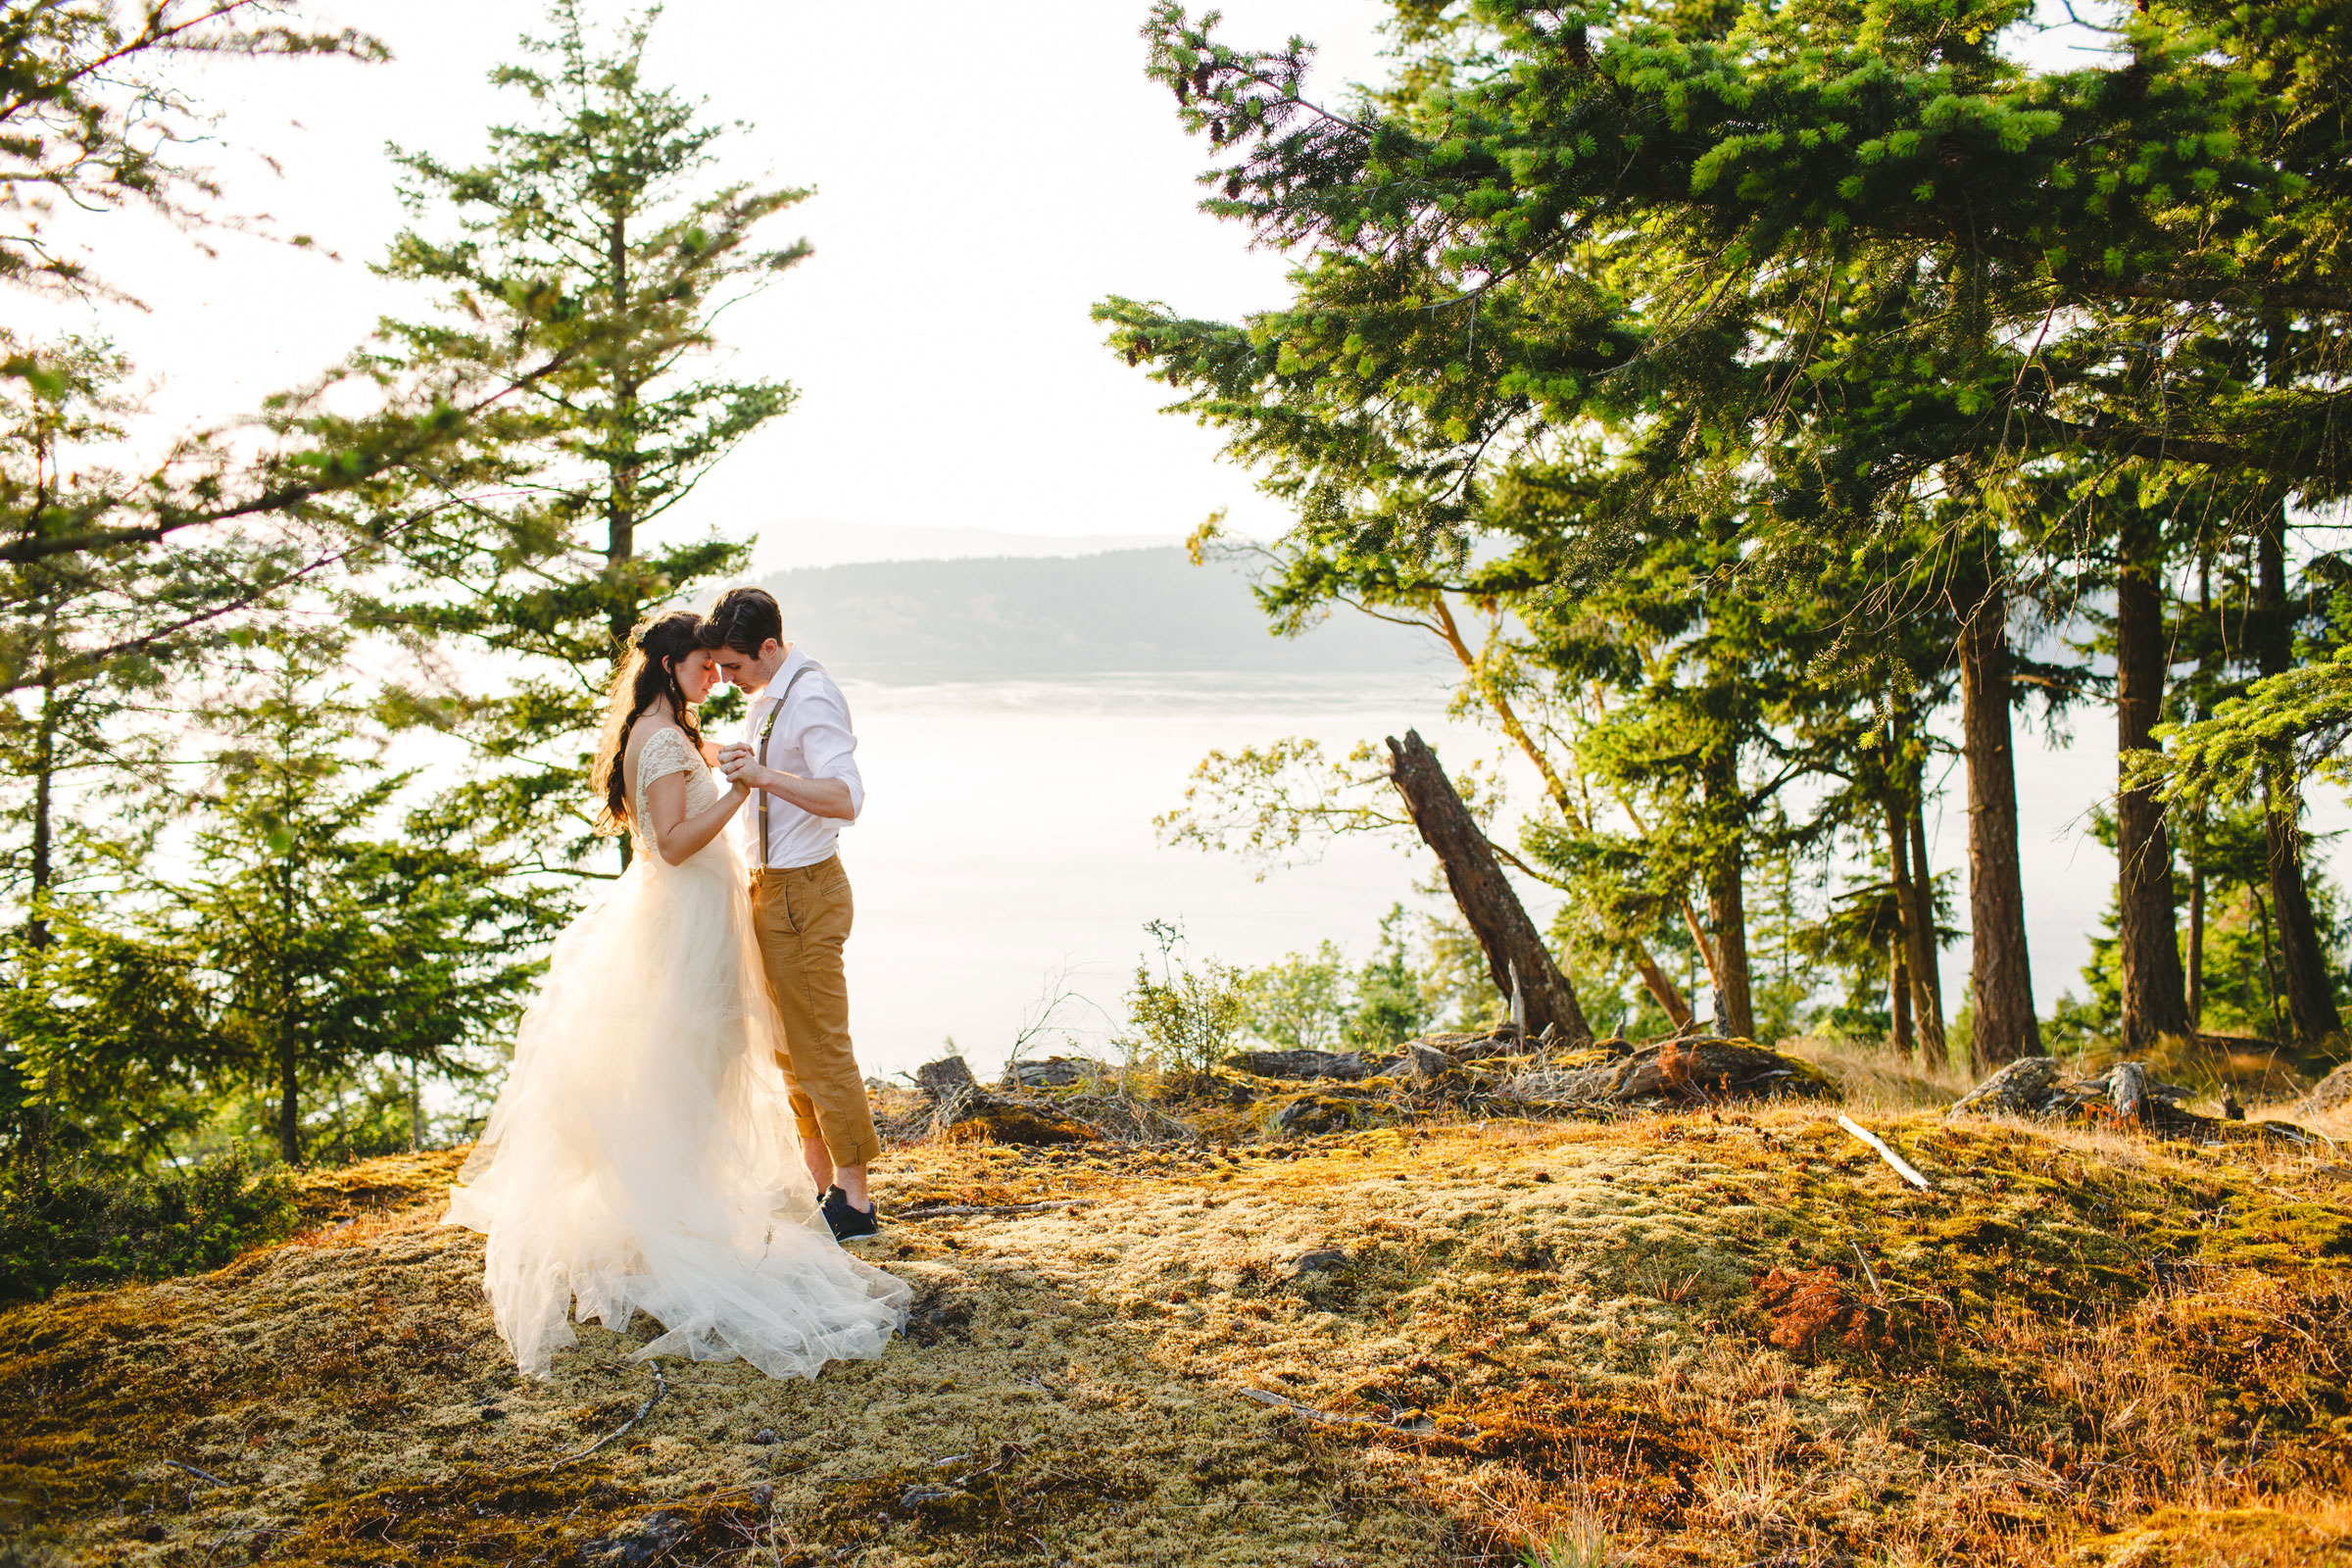 Bride and groom at forested viewpoint - photo by Satya Curcio Photography